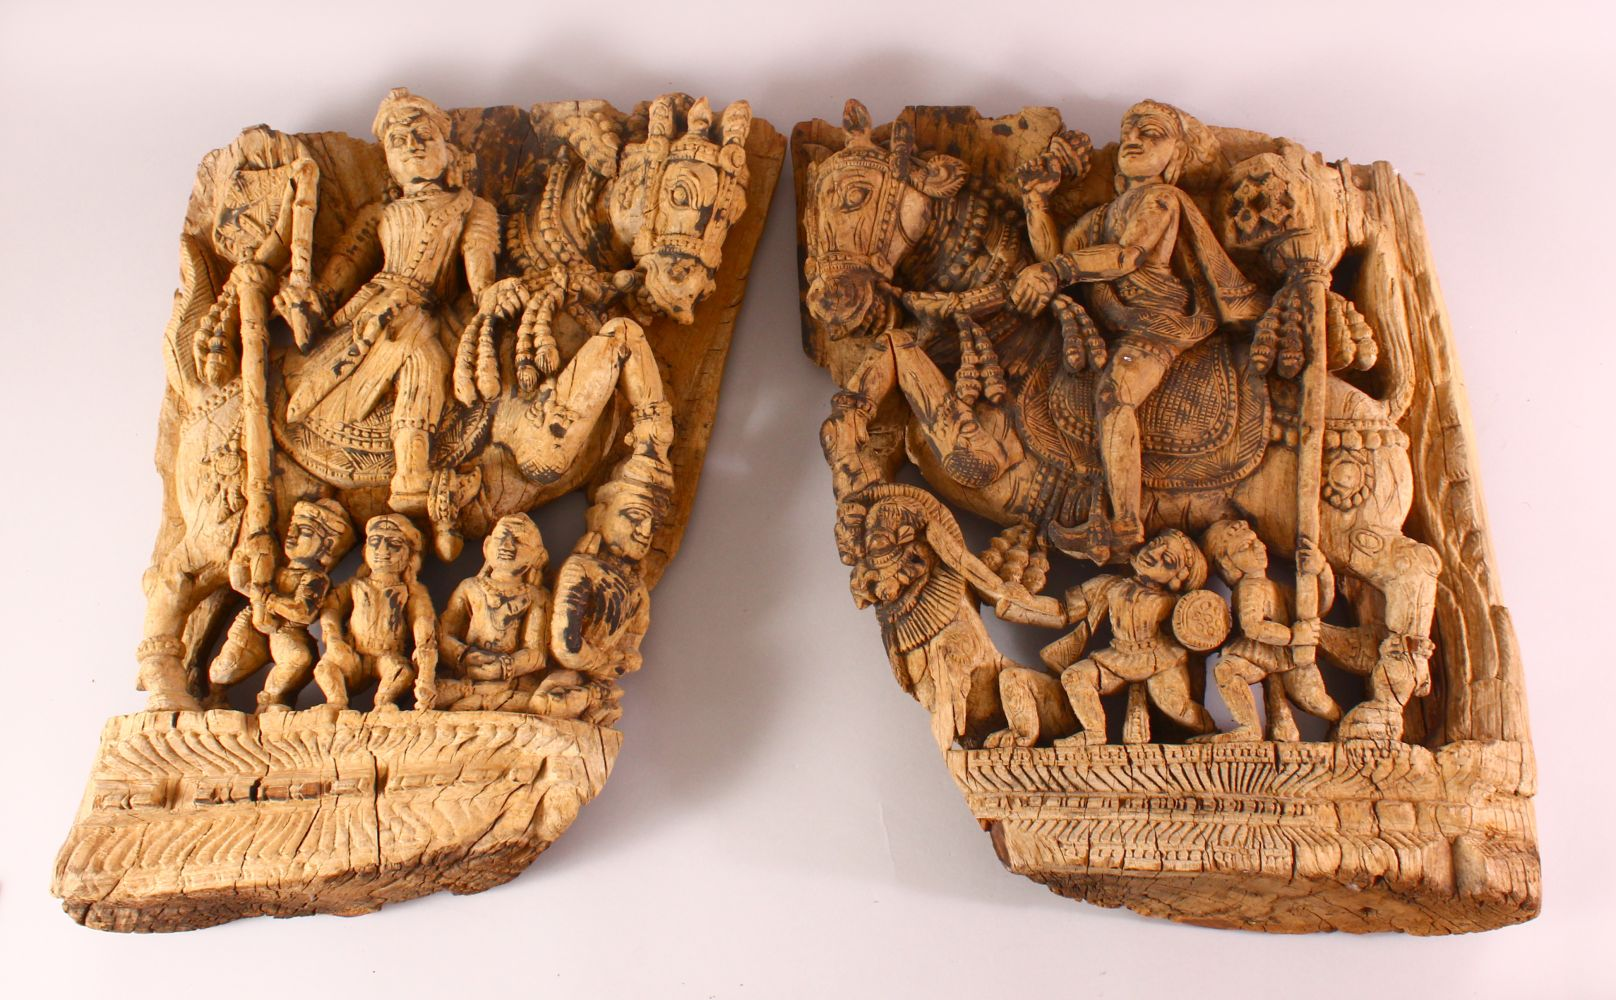 TWO 18TH/19TH CENTURY SOUTH INDIAN CARVED WOODEN PANELS, each depicting a figure on horseback with